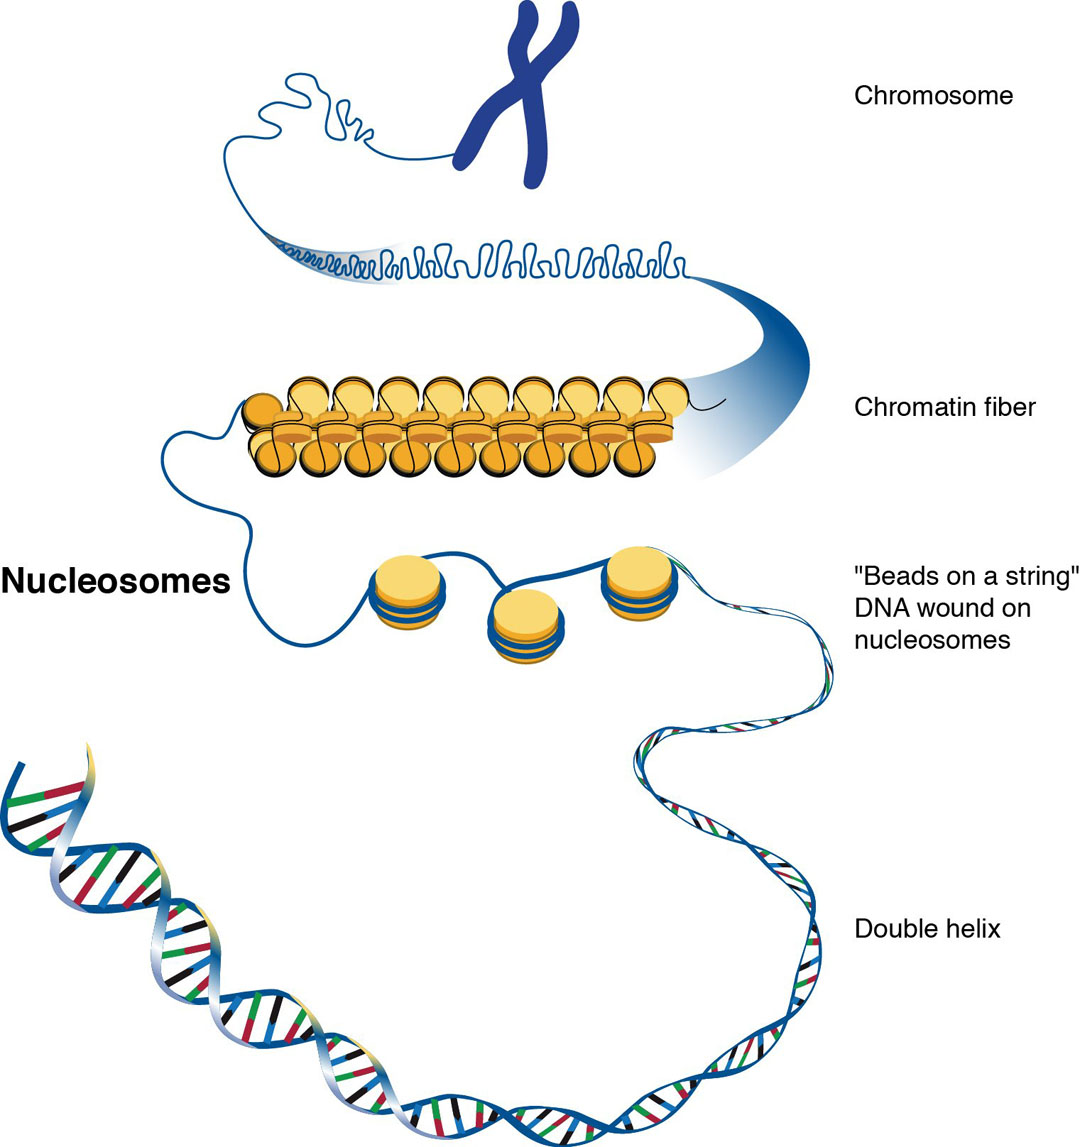 relationship between histones and nucleosomes image